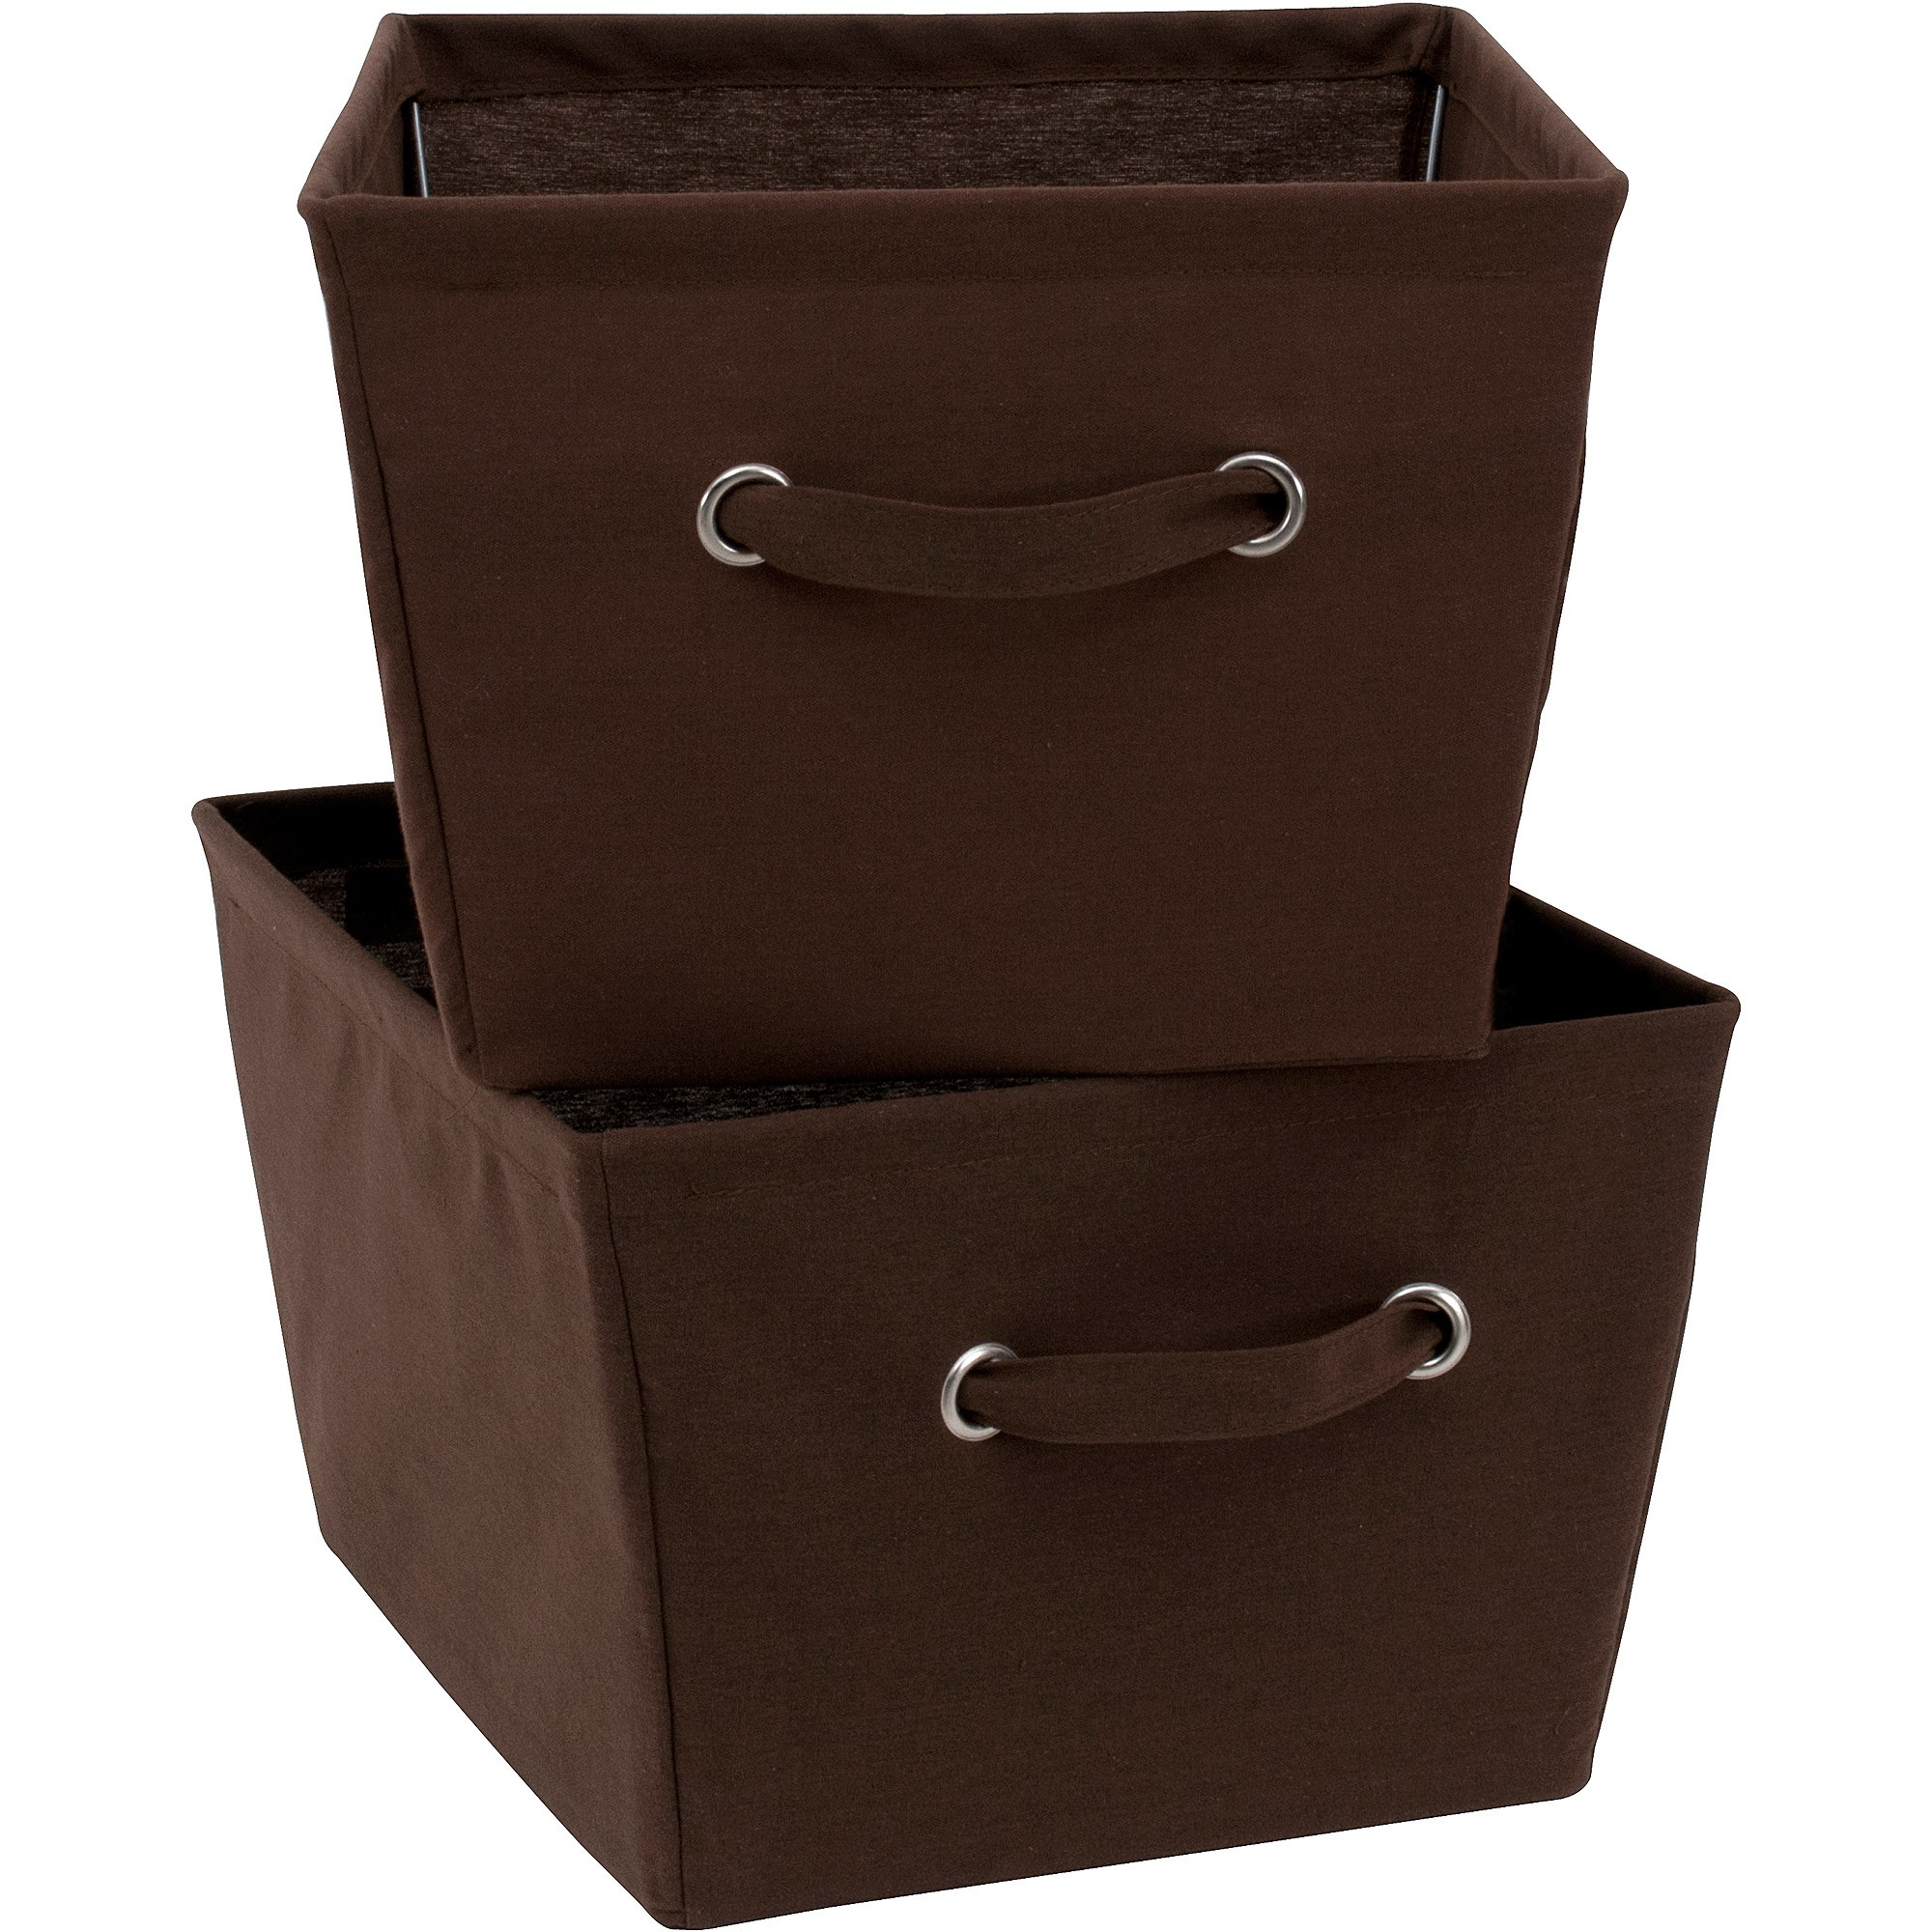 Mainstays Large Canvas Bins 2 Pack-Brown